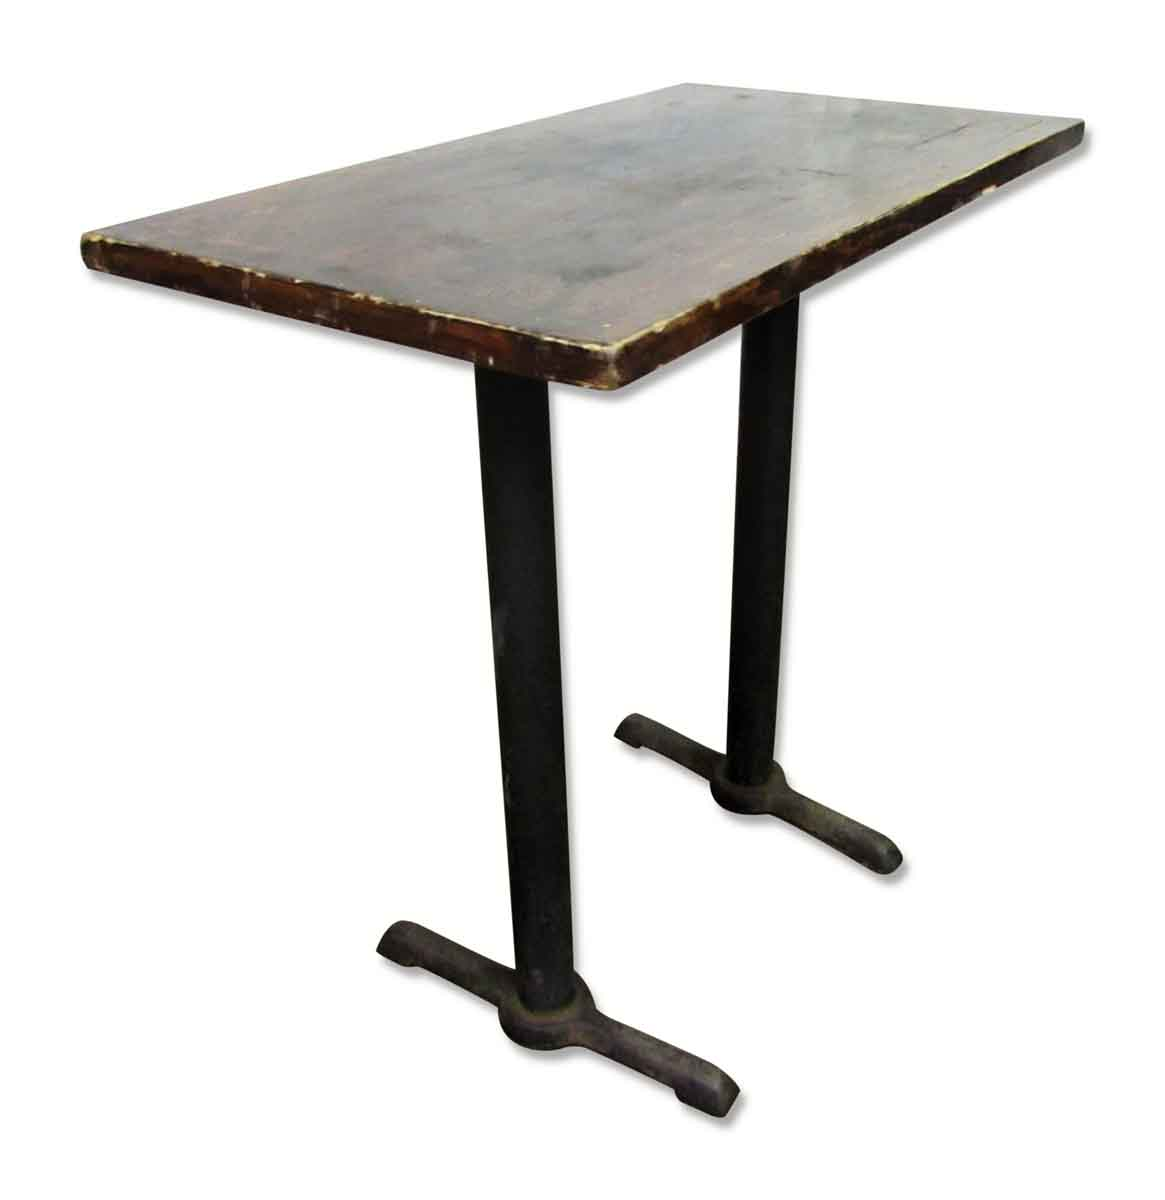 counter height table legs wood 28 images wooden top  : M215671 03 from americanhomesforsale.us size 1165 x 1200 jpeg 19kB